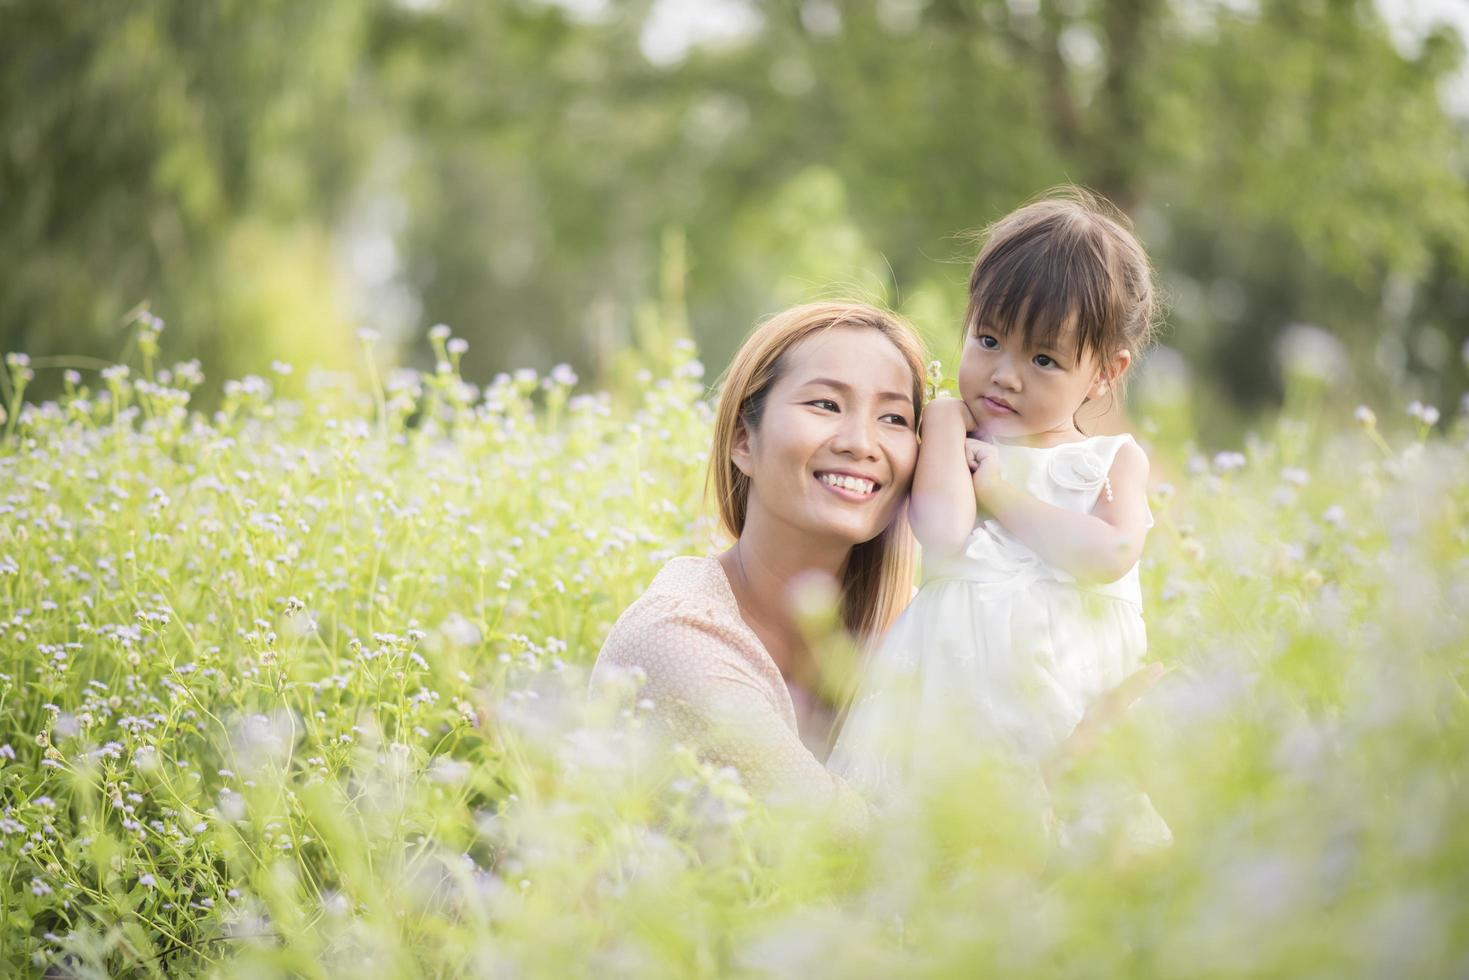 Mother and little daughter playing together in a meadow photo